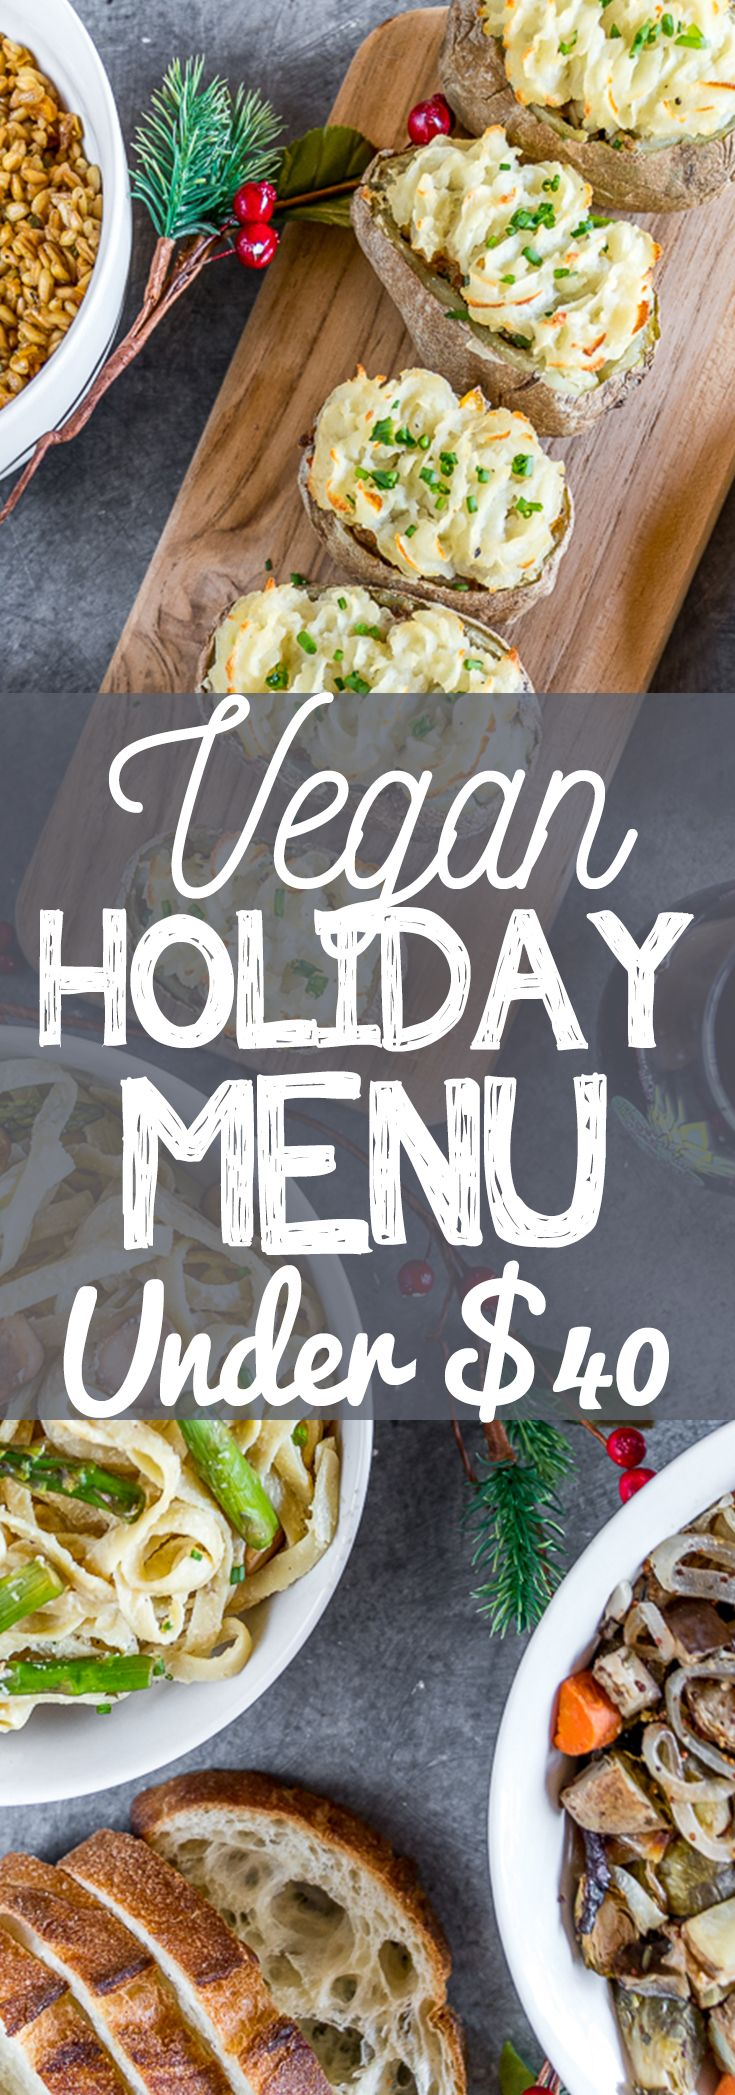 Vegan Holiday Menu on a Budget 4 Courses Under 40